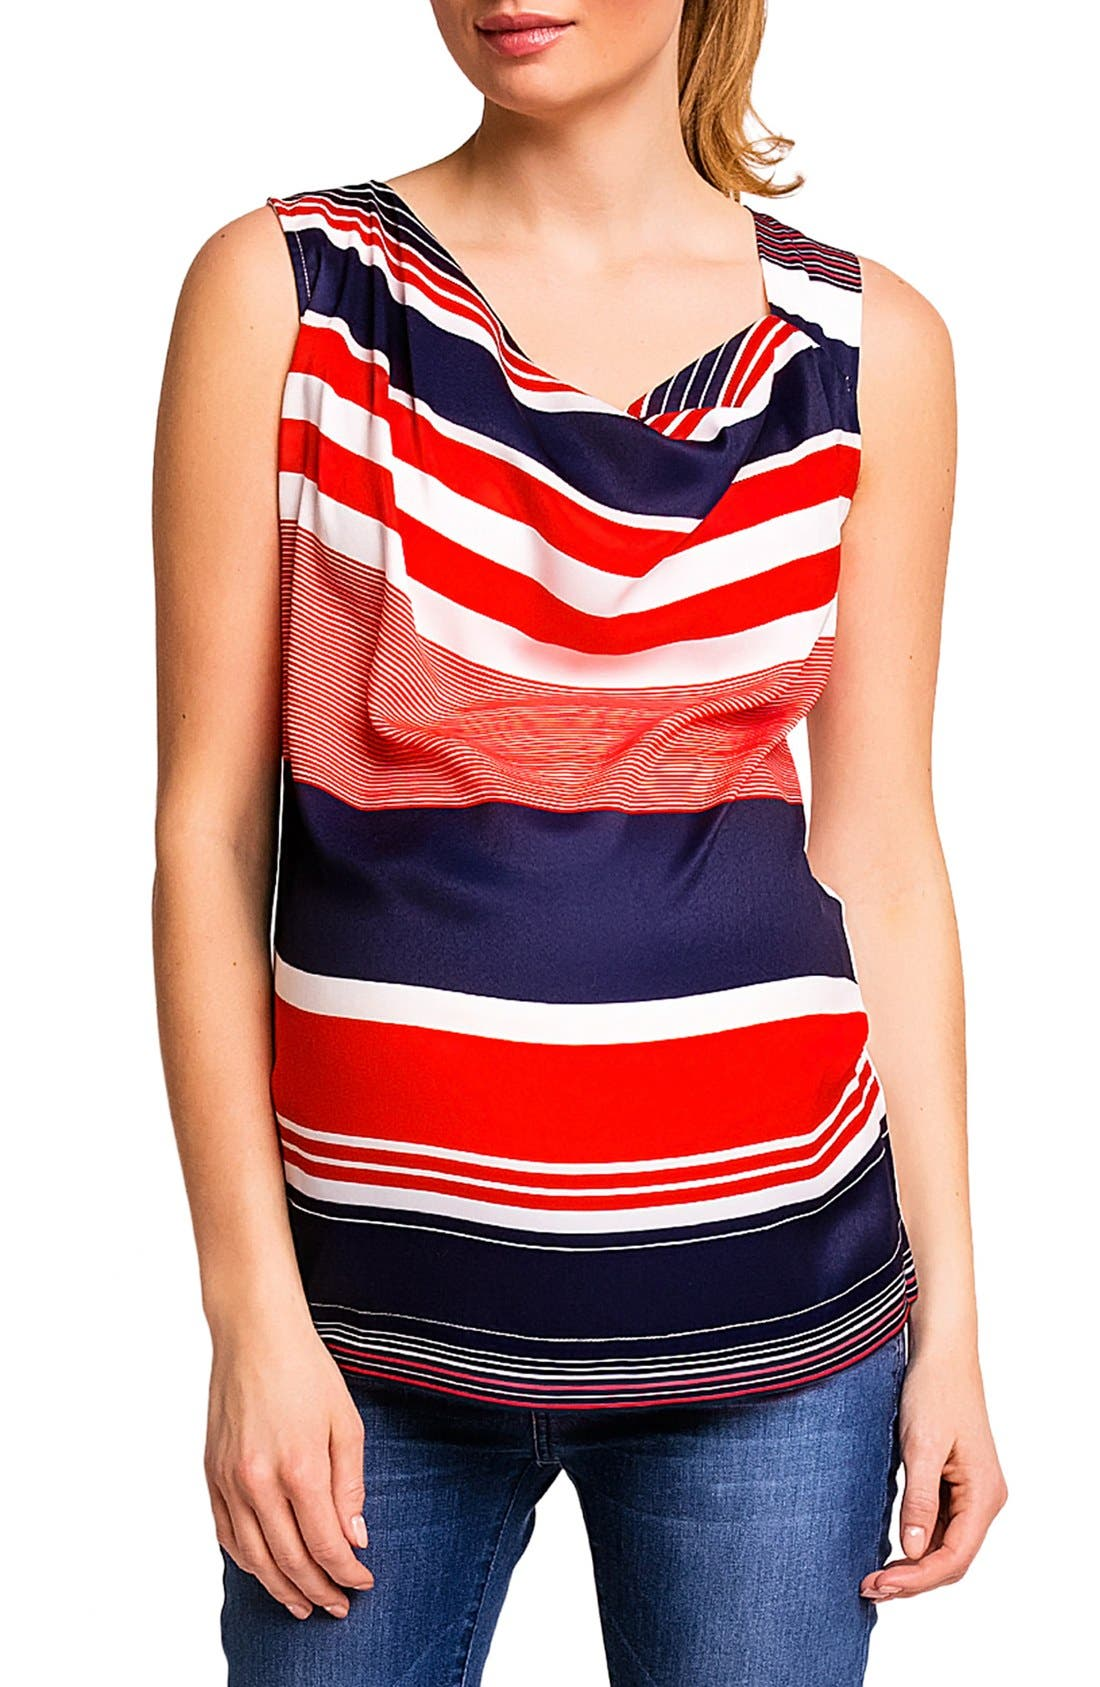 'Fialka' Maternity Top,                         Main,                         color, Red/Blue Stripes